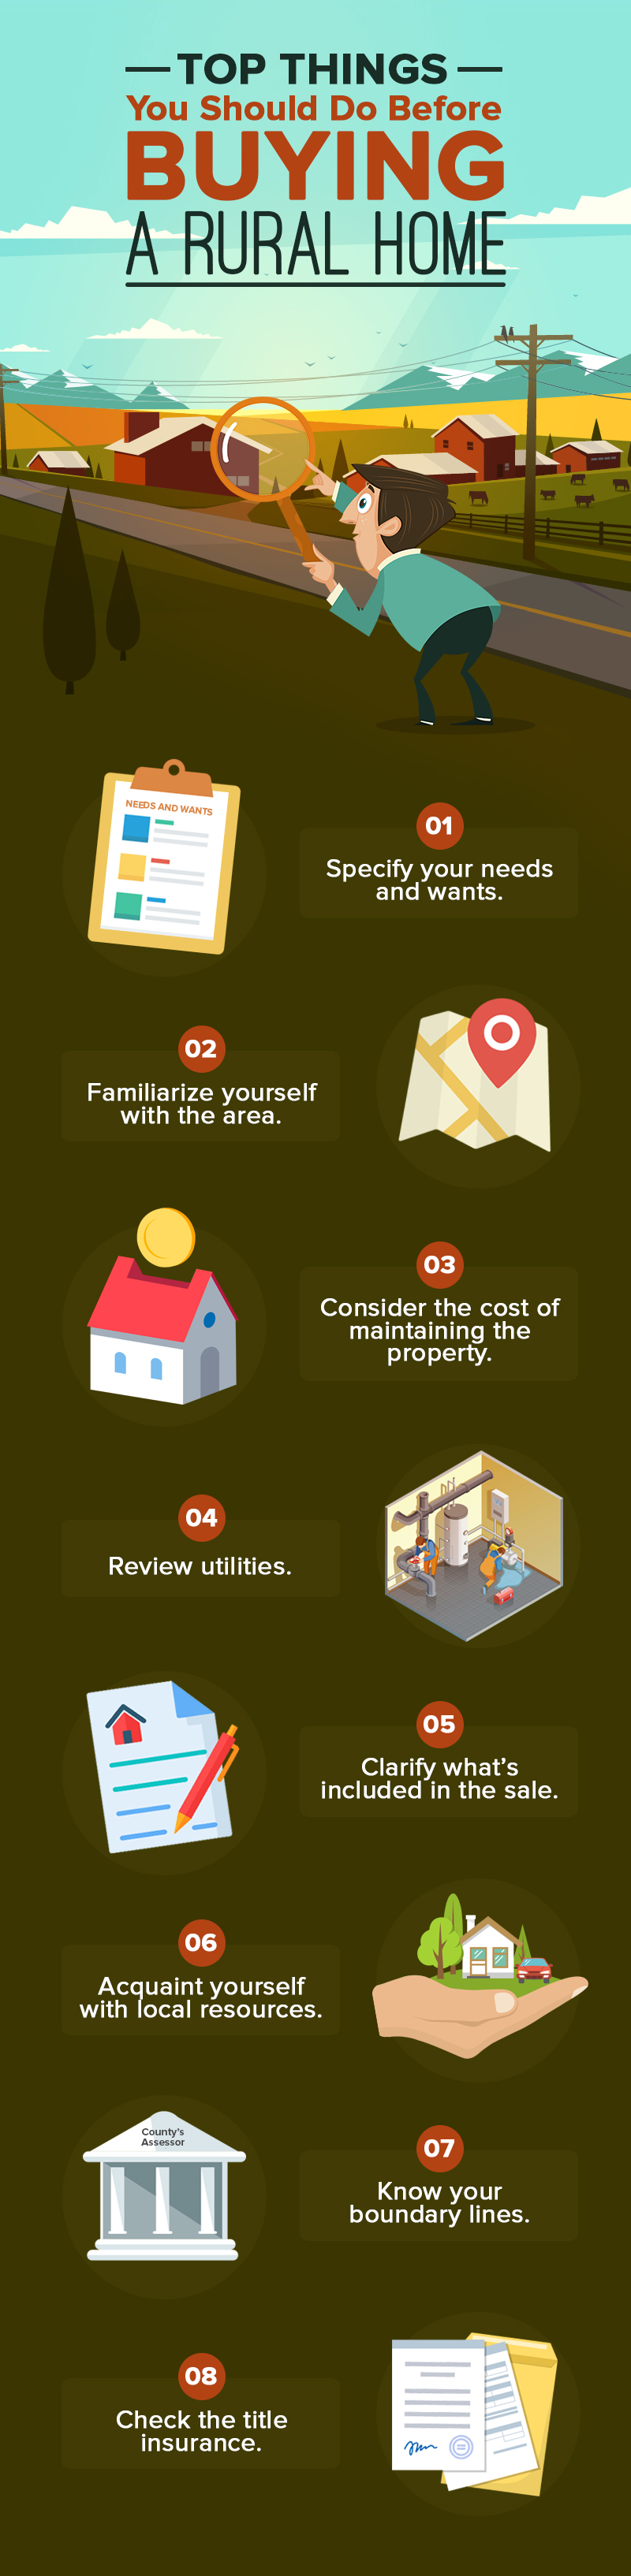 Top Things You Should Do Before Buying A Rural Home.jpg